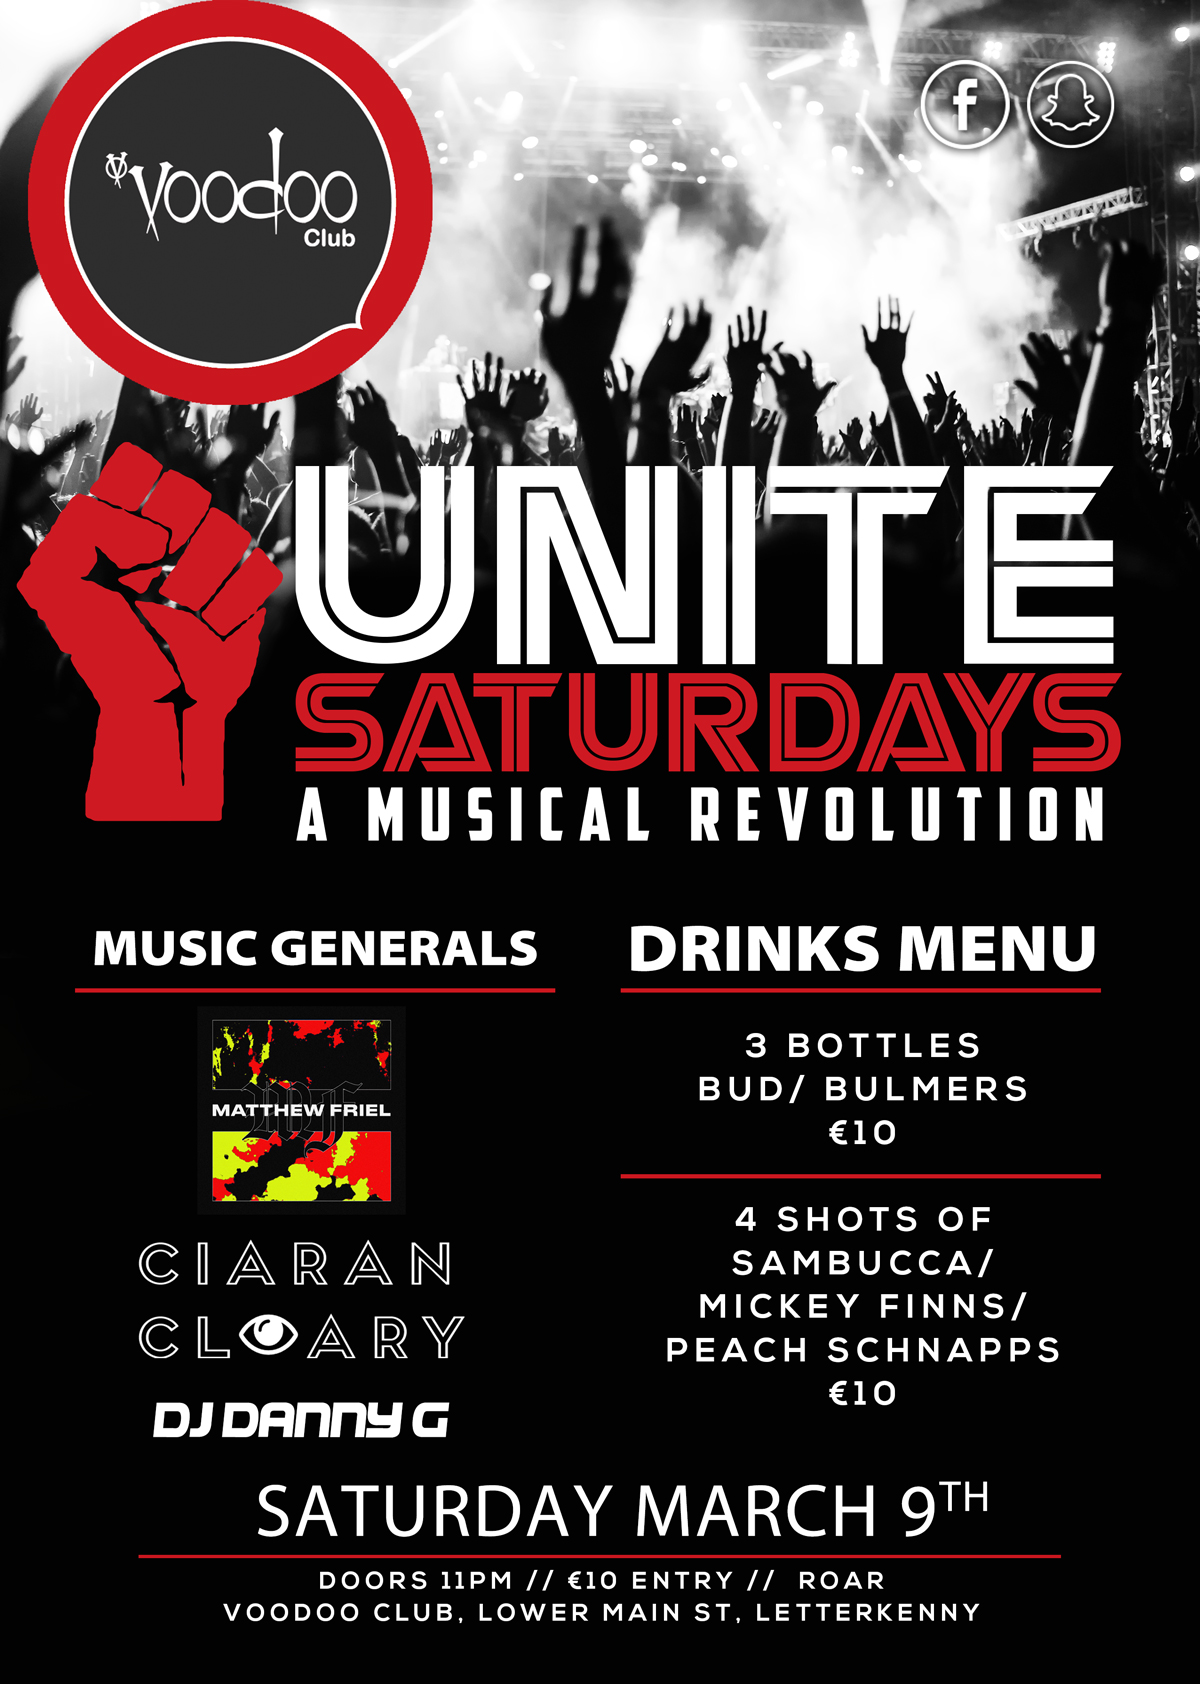 voodoo-venue---unite-saturdays-sat-mar-9-2019.jpg